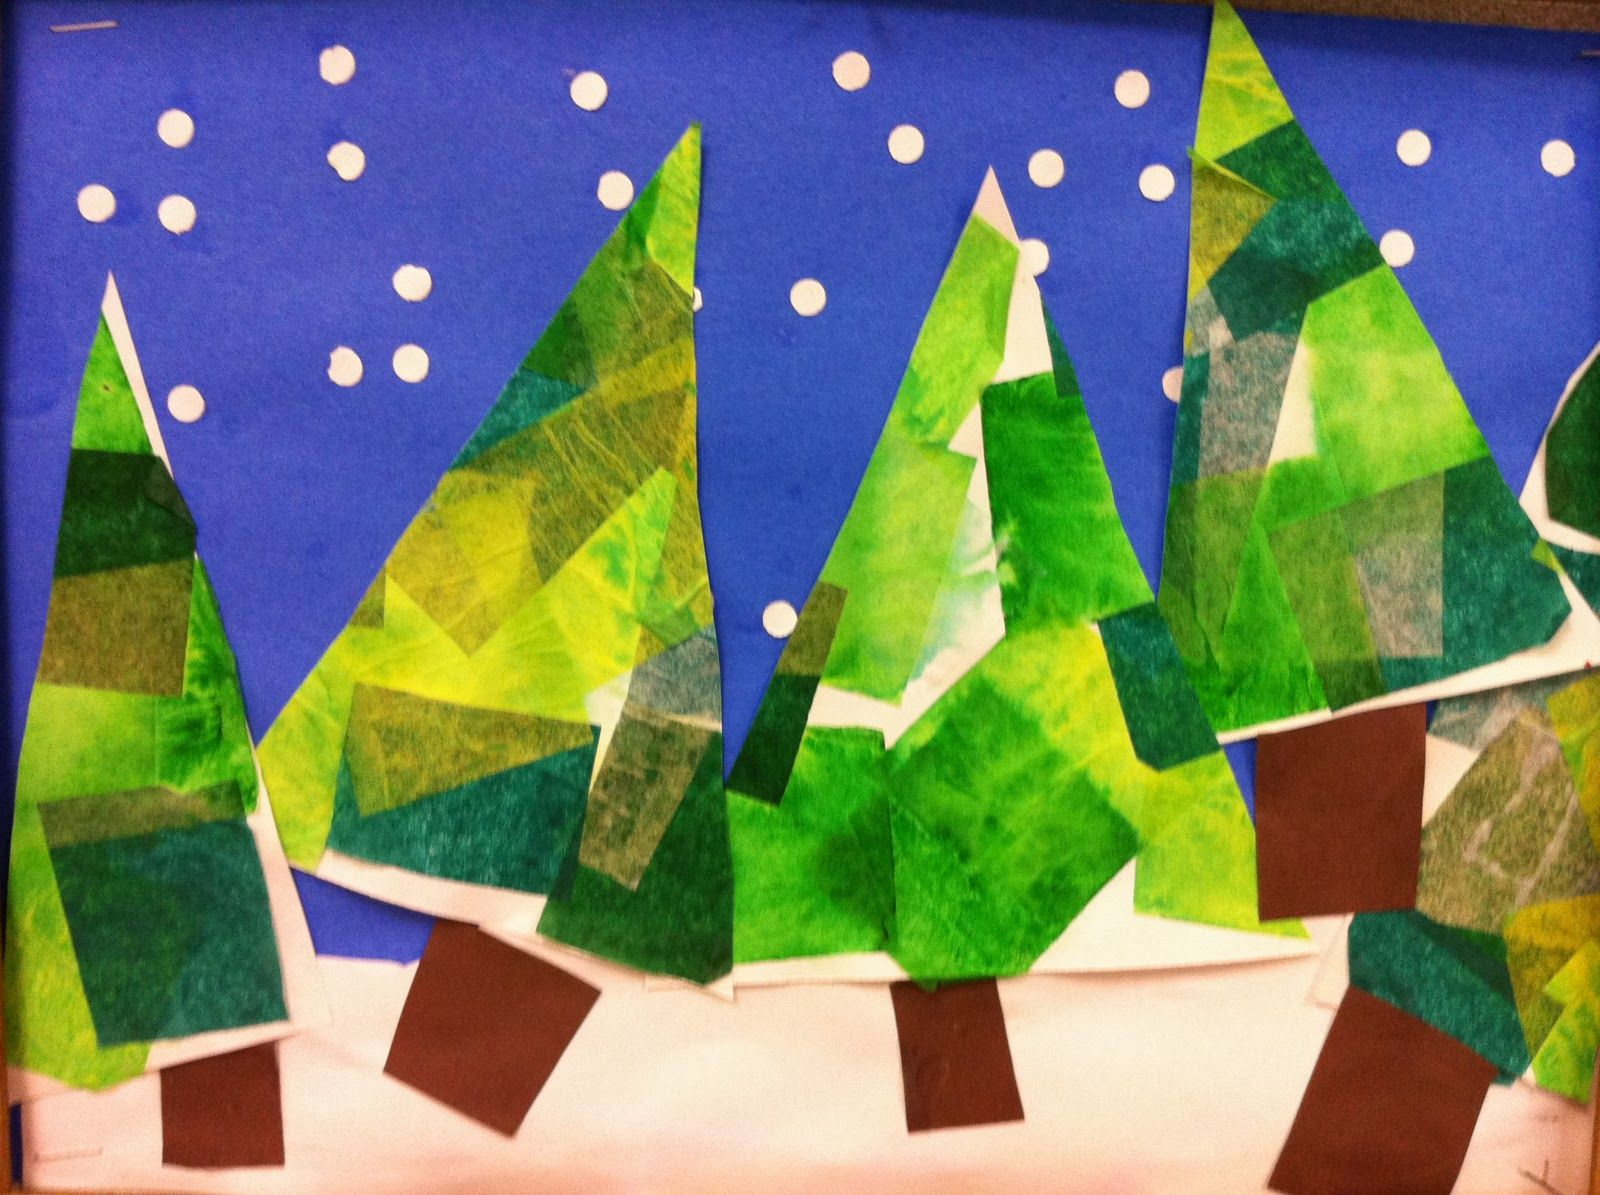 Christmas Tree Construction Paper Tissue Paper Pom Poms Hole Punch Snowflakes Elementary Art Christmas Art Projects Winter Art Lesson